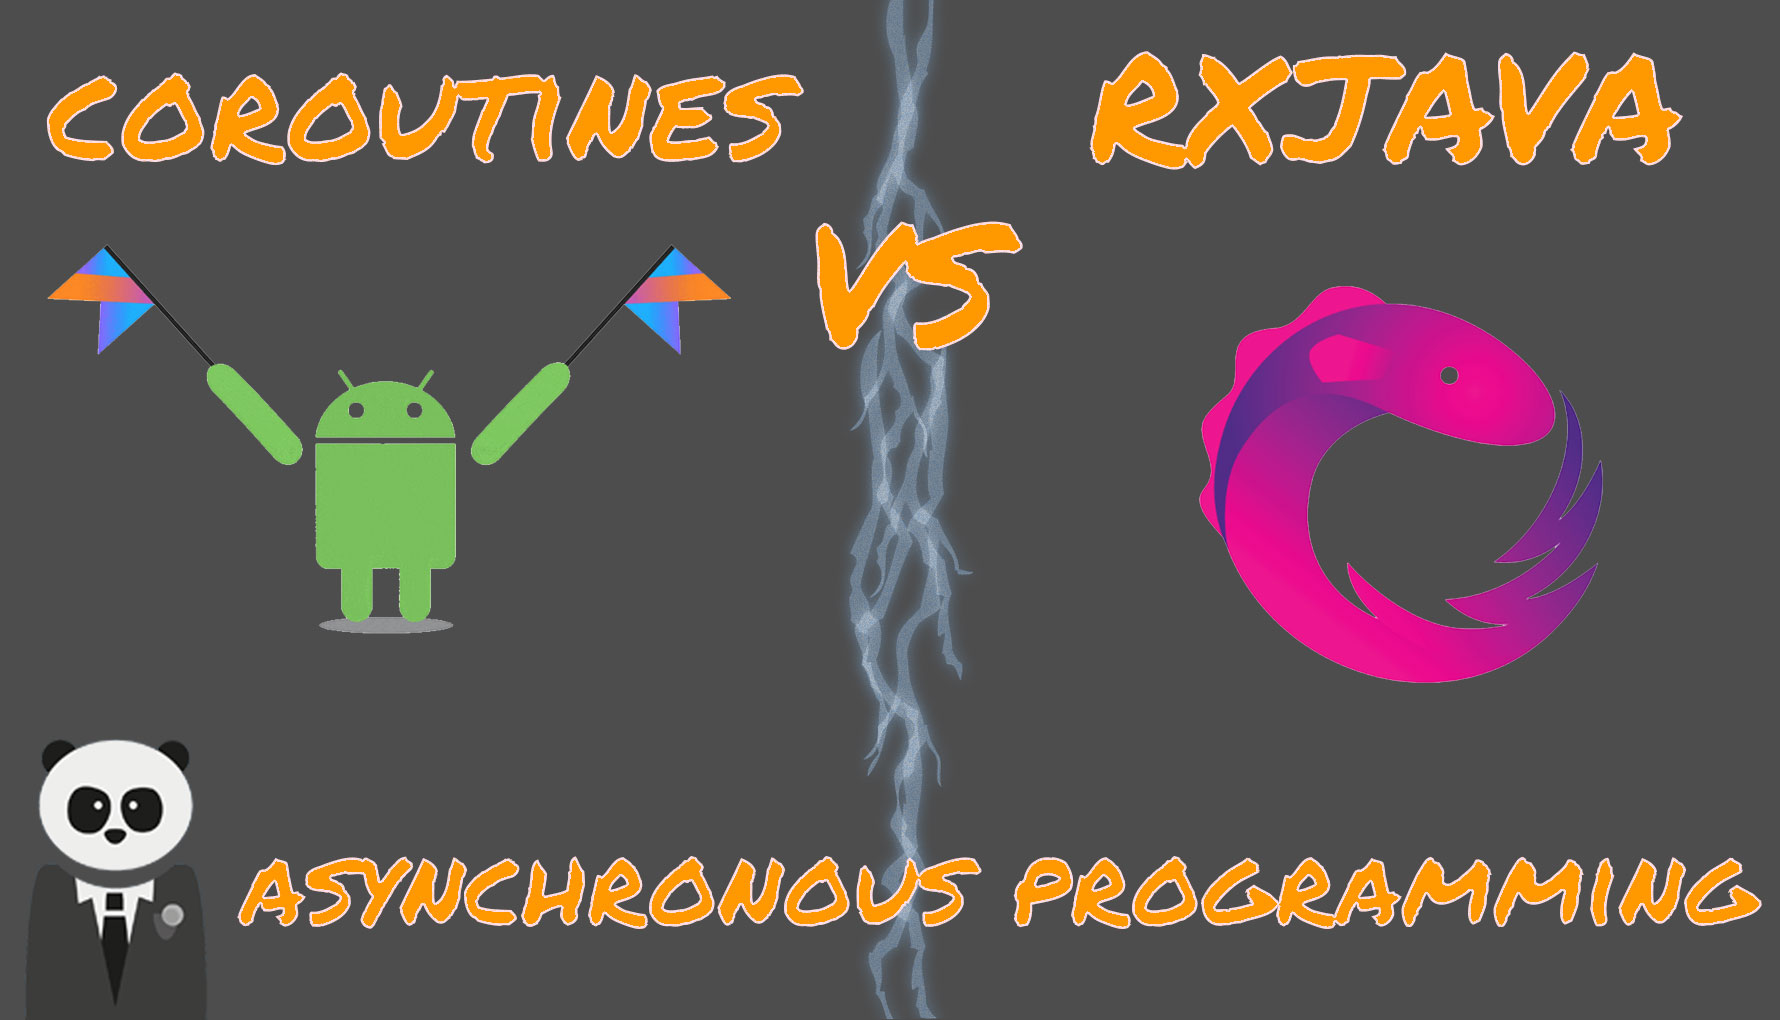 Coroutines vs RxJava: The Way Forward with Asynchronous Programming for Android